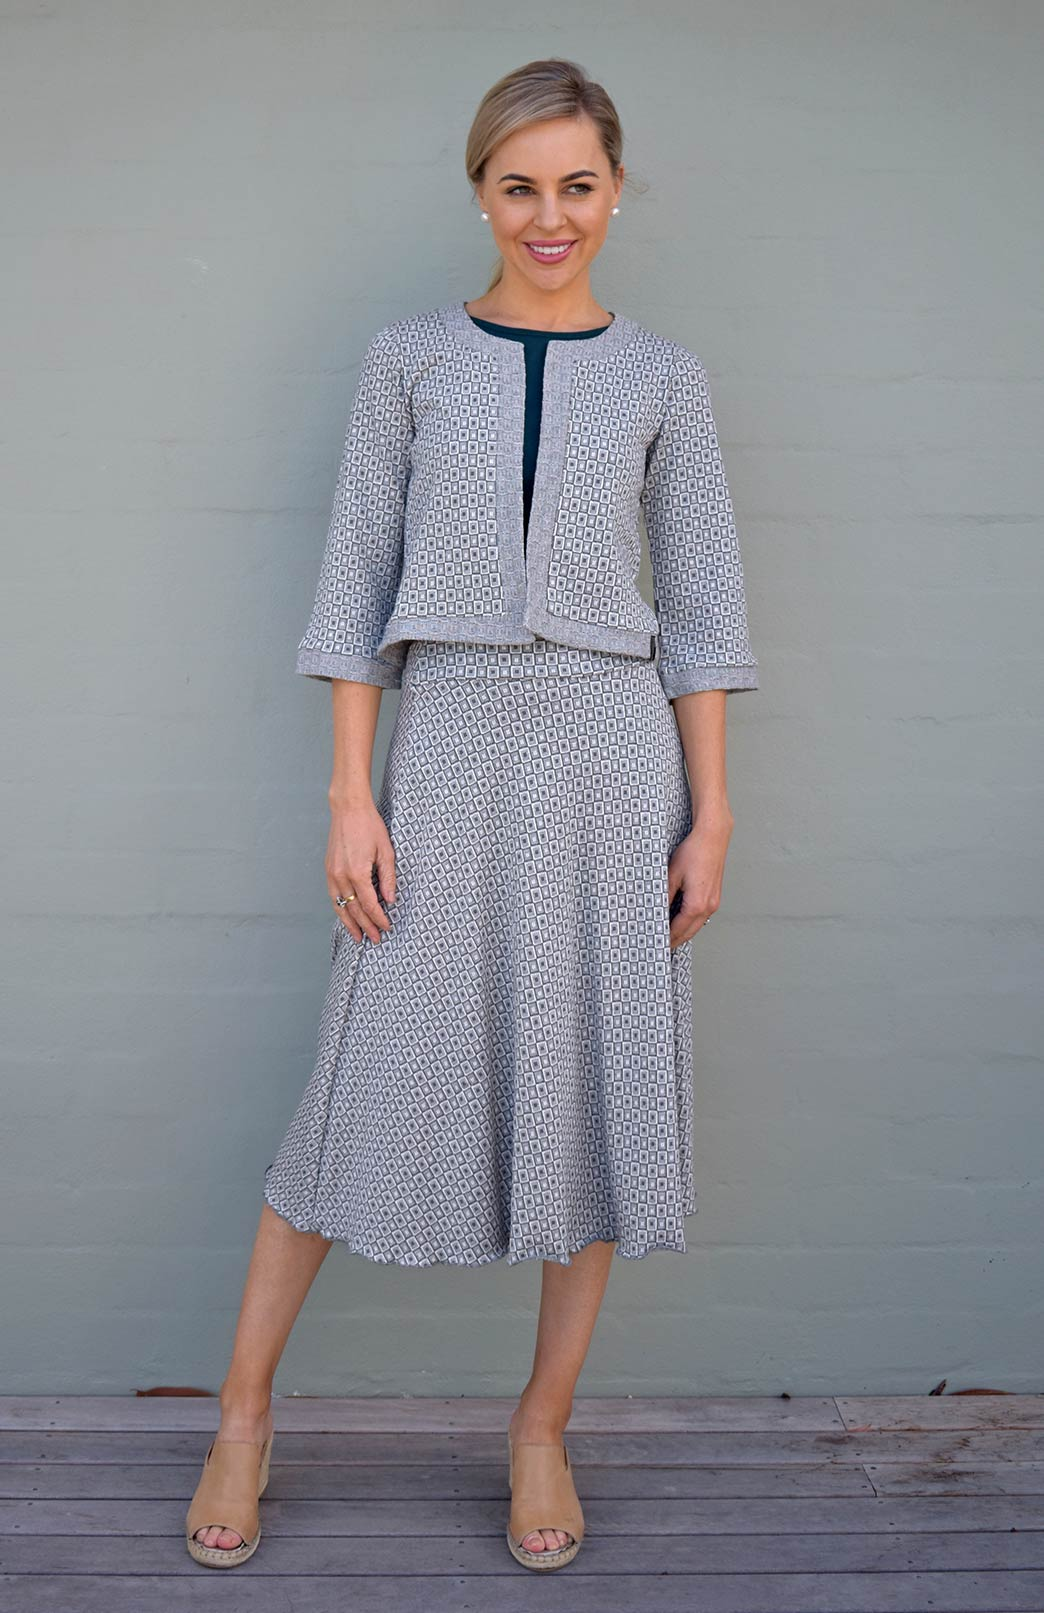 Twirl Skirt - Women's Olive Green and Ivory Mini Check A-Line Swing Wool Skirt - Smitten Merino Tasmania Australia